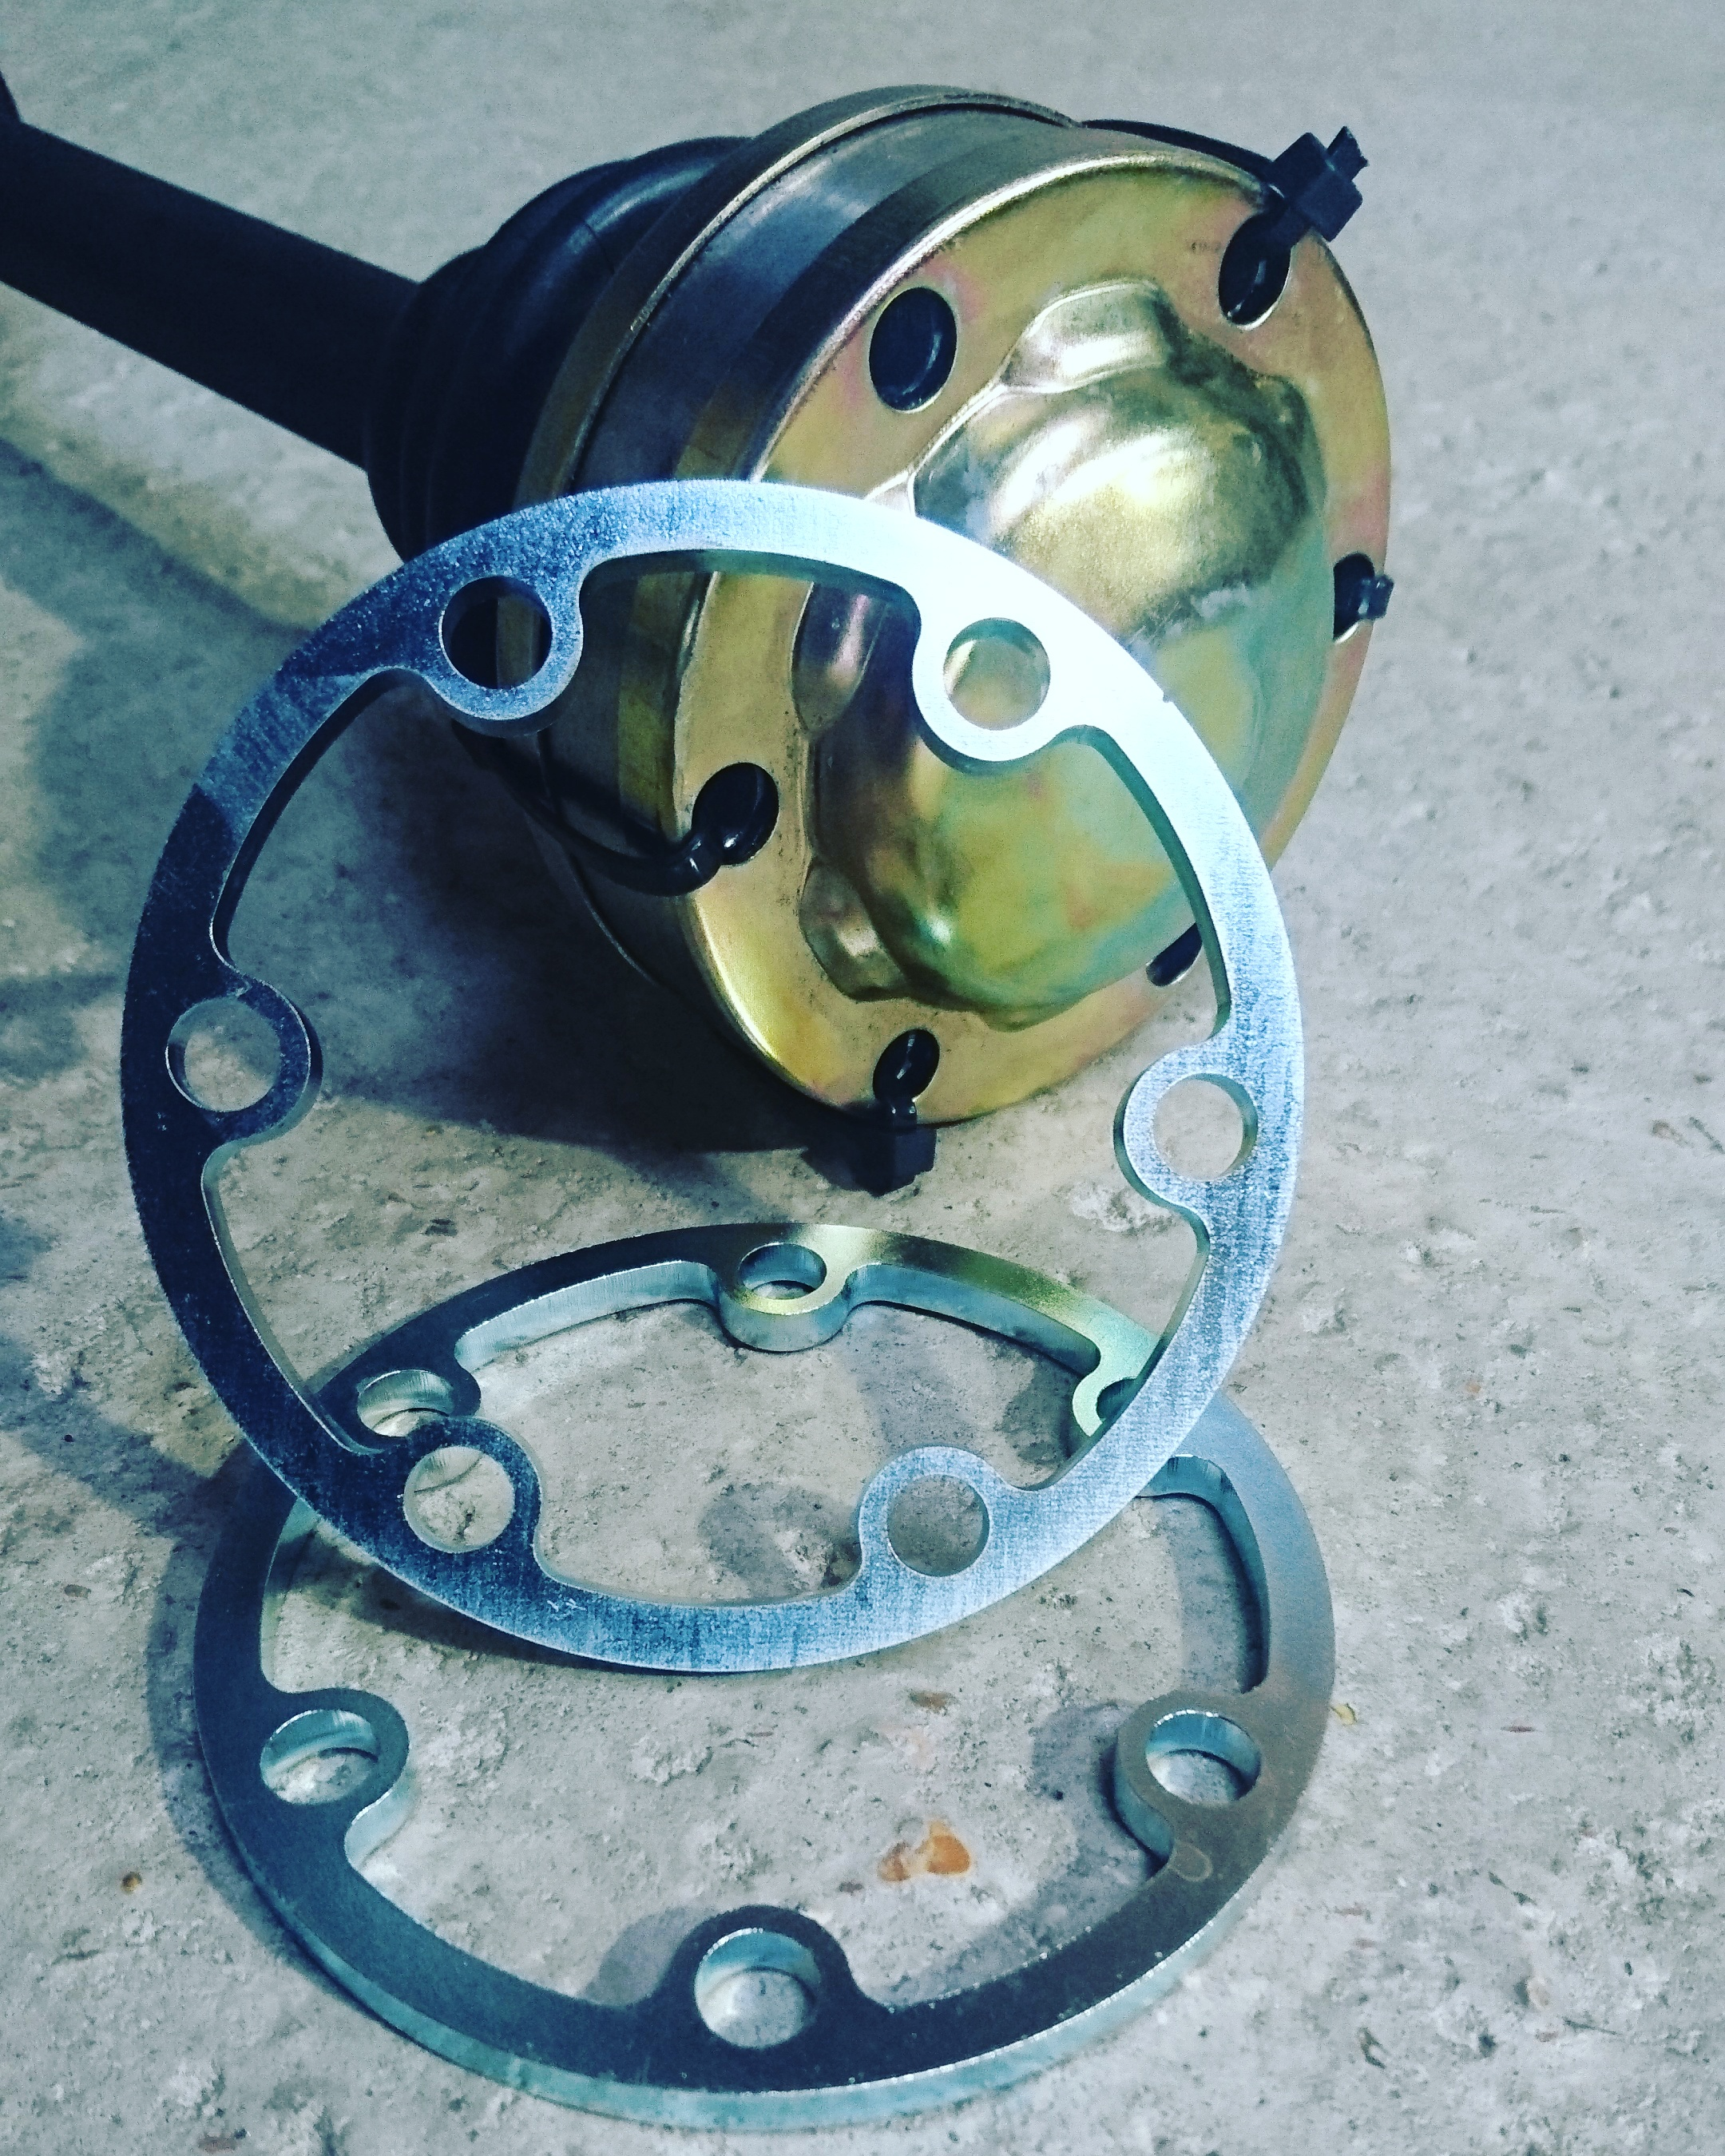 Hack Engineering Driveshaft Spacers (E36 M3/E46 M3)